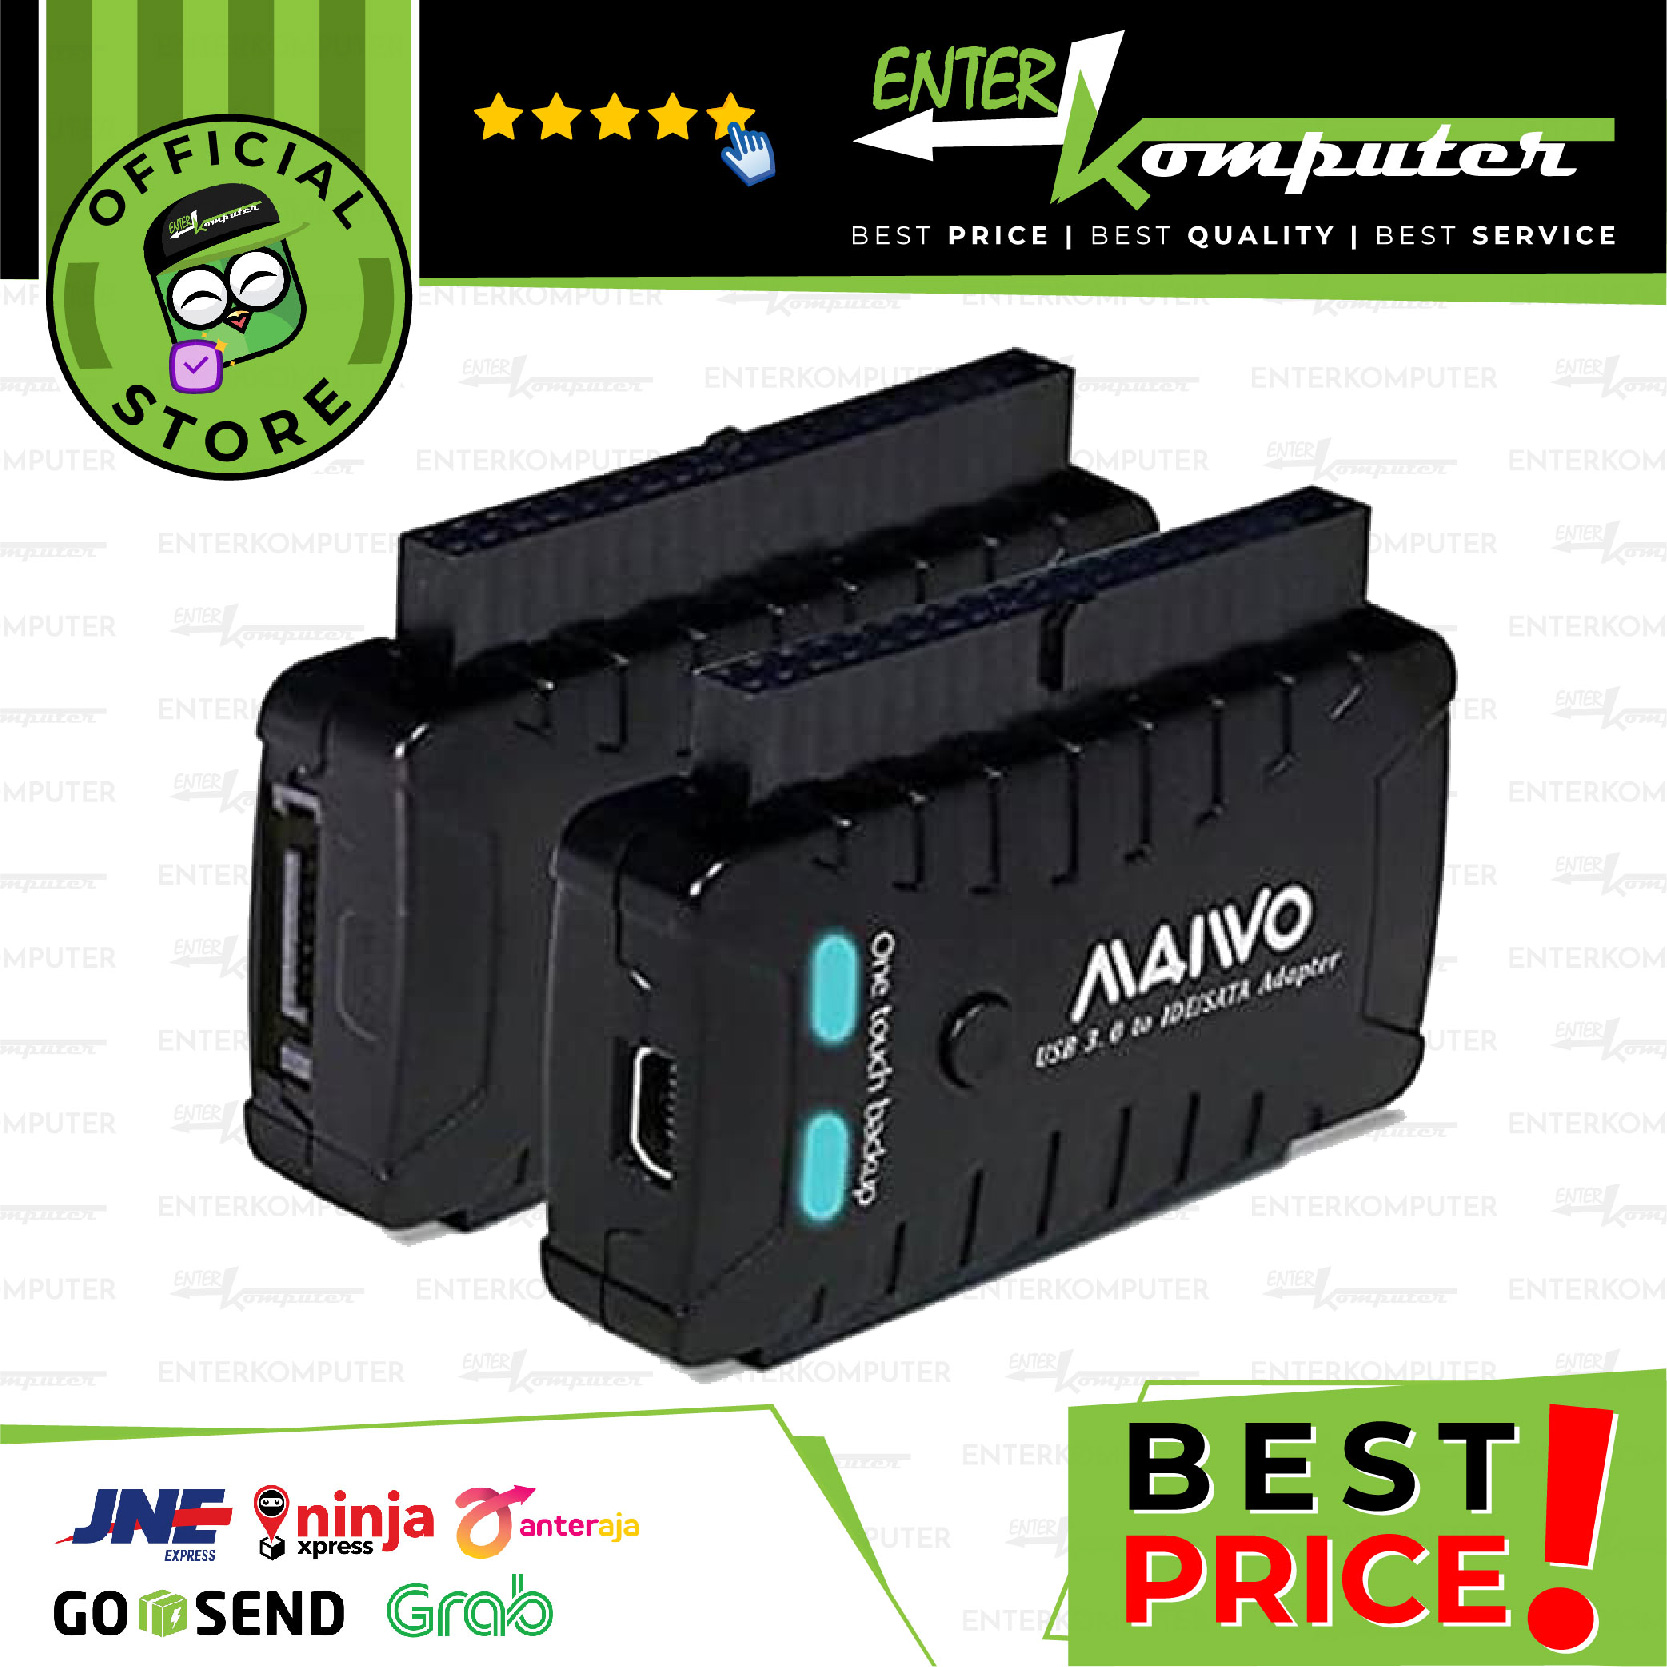 MAIWO USB 3.0 to SATA Hard Disk Adapter - K132U3IS